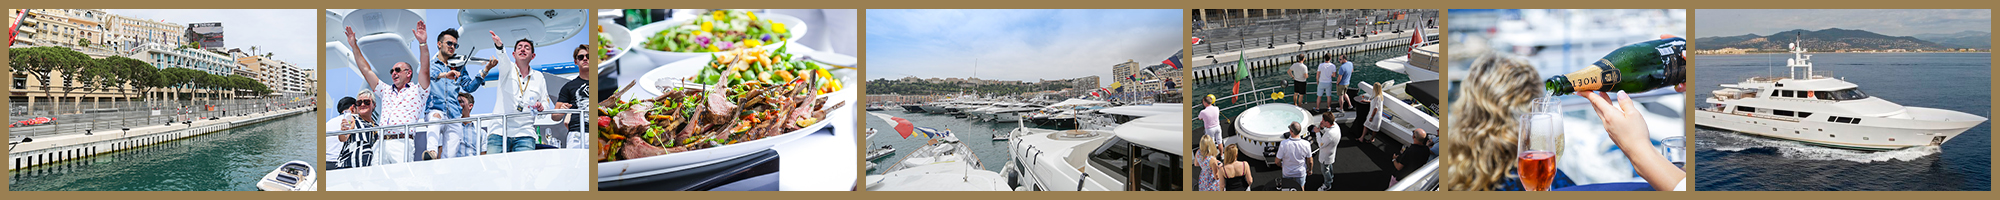 Monaco Grand Prix 2018 Hospitality Corporate Packages